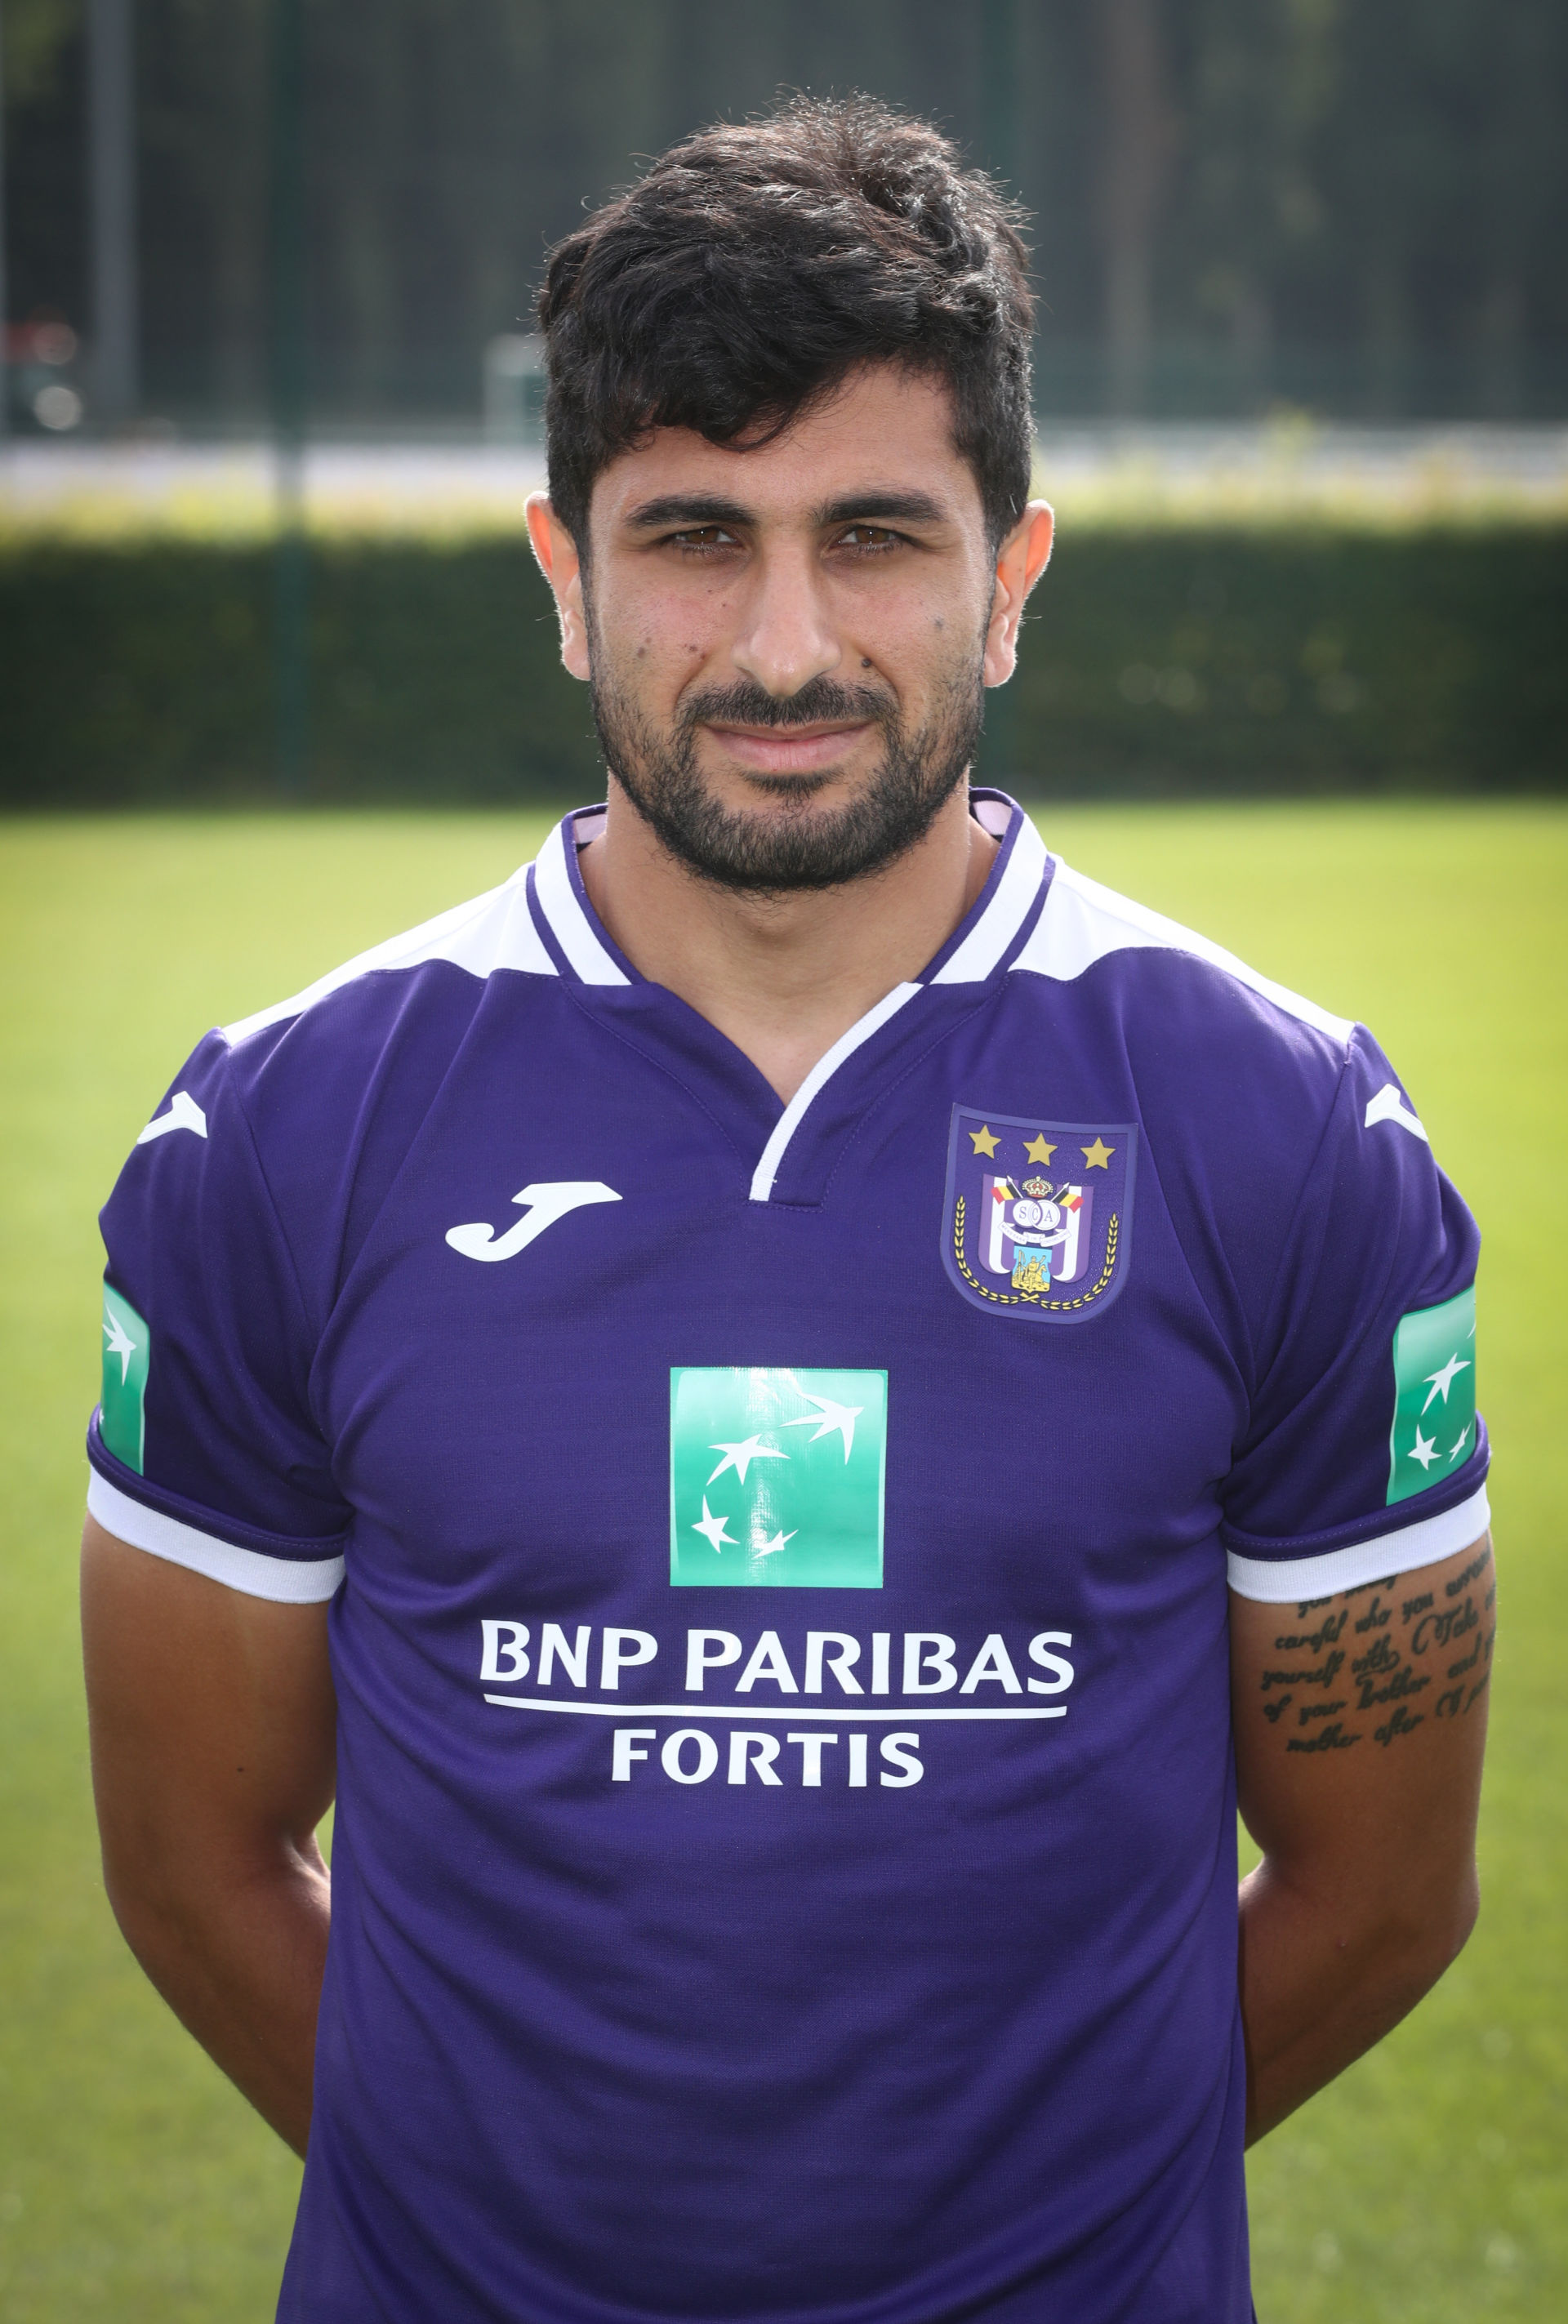 July 18, 2019 - Anderlecht, Belgium - Anderlecht's Kenneth Kenny Saief poses for the photographer, at the 2019-2020 photoshoot of Belgian Jupiler Pro League club Royal Sporting Club Anderlecht, Thursday 18 July 2019 in Anderlecht. (Credit Image: © Virginie Lefour/Belga via ZUMA Press) BELGIA OILKA NOZNA LIGA BELGIJSKA SESJA PILKARZY PILKARZ FOT. ZUMA/NEWSPIX.PL POLAND ONLY! --- Newspix.pl *** Local Caption *** www.newspix.pl mail us: info@newspix.pl call us: 0048 022 23 22 222 --- Polish Picture Agency by Ringier Axel Springer Poland